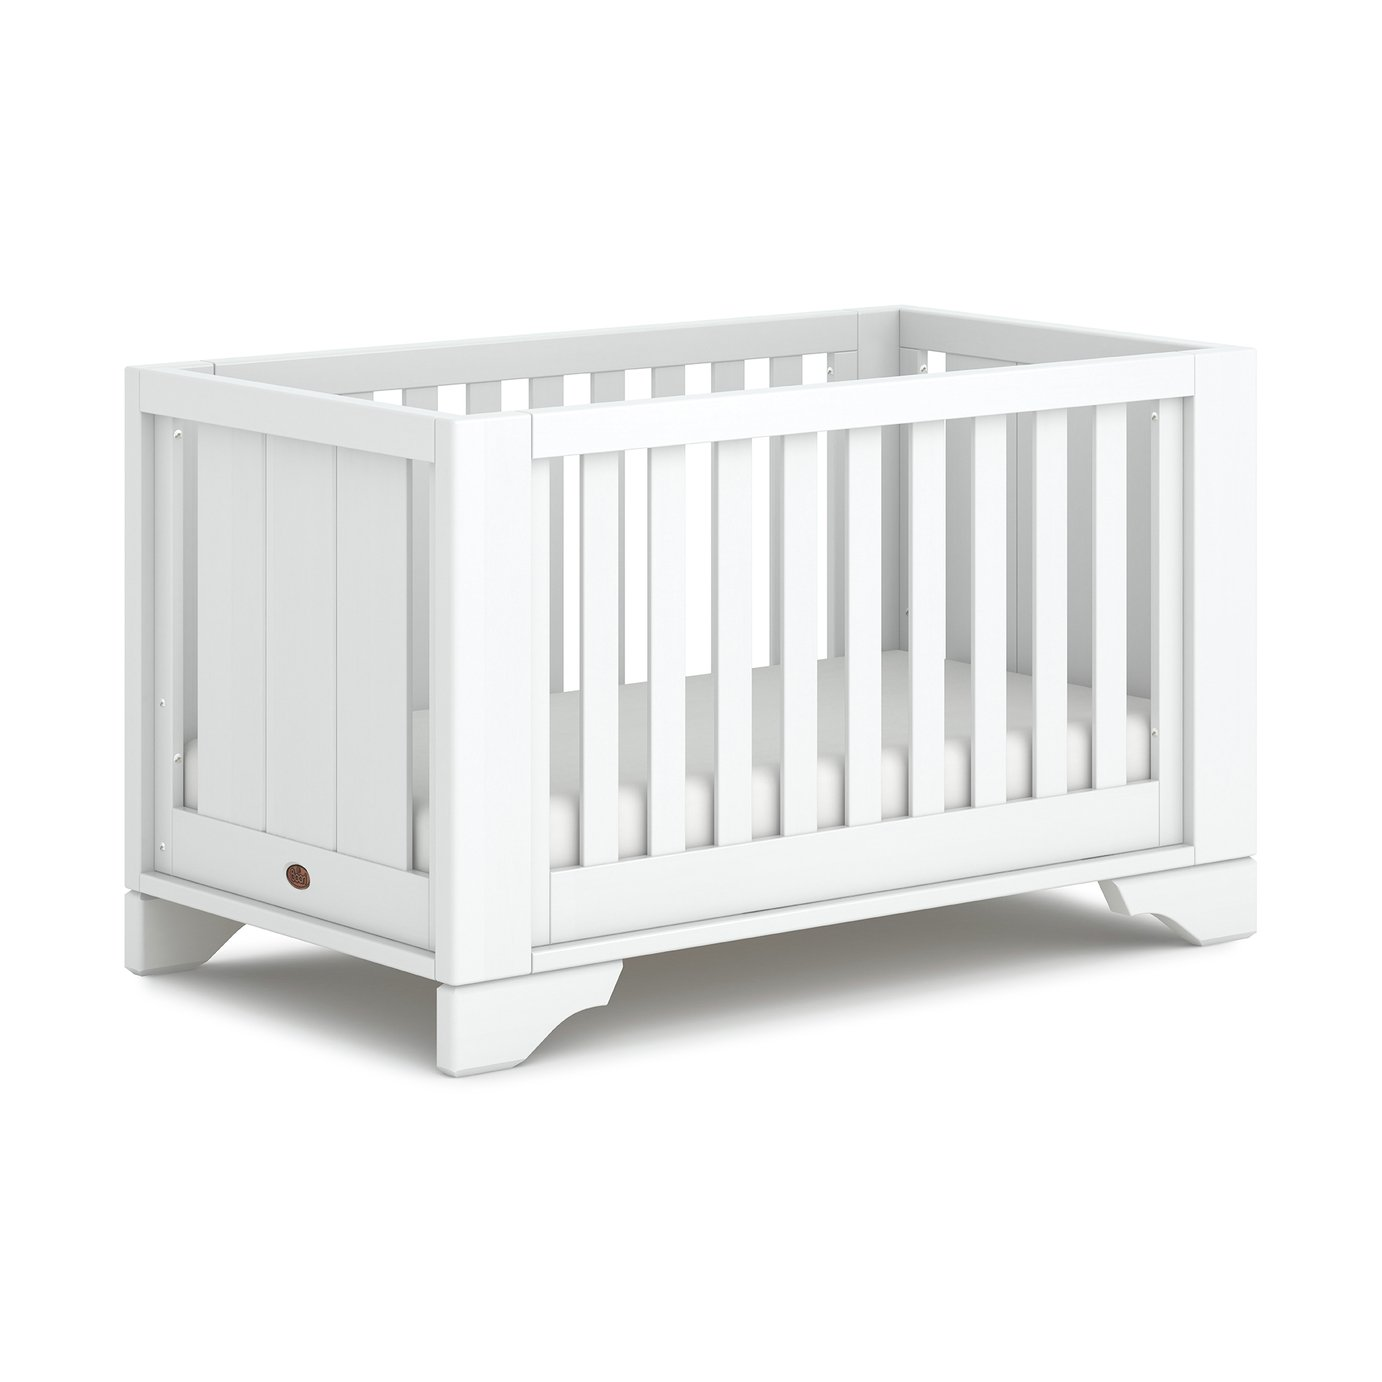 Boori Eton Expandable Cot Bed - White